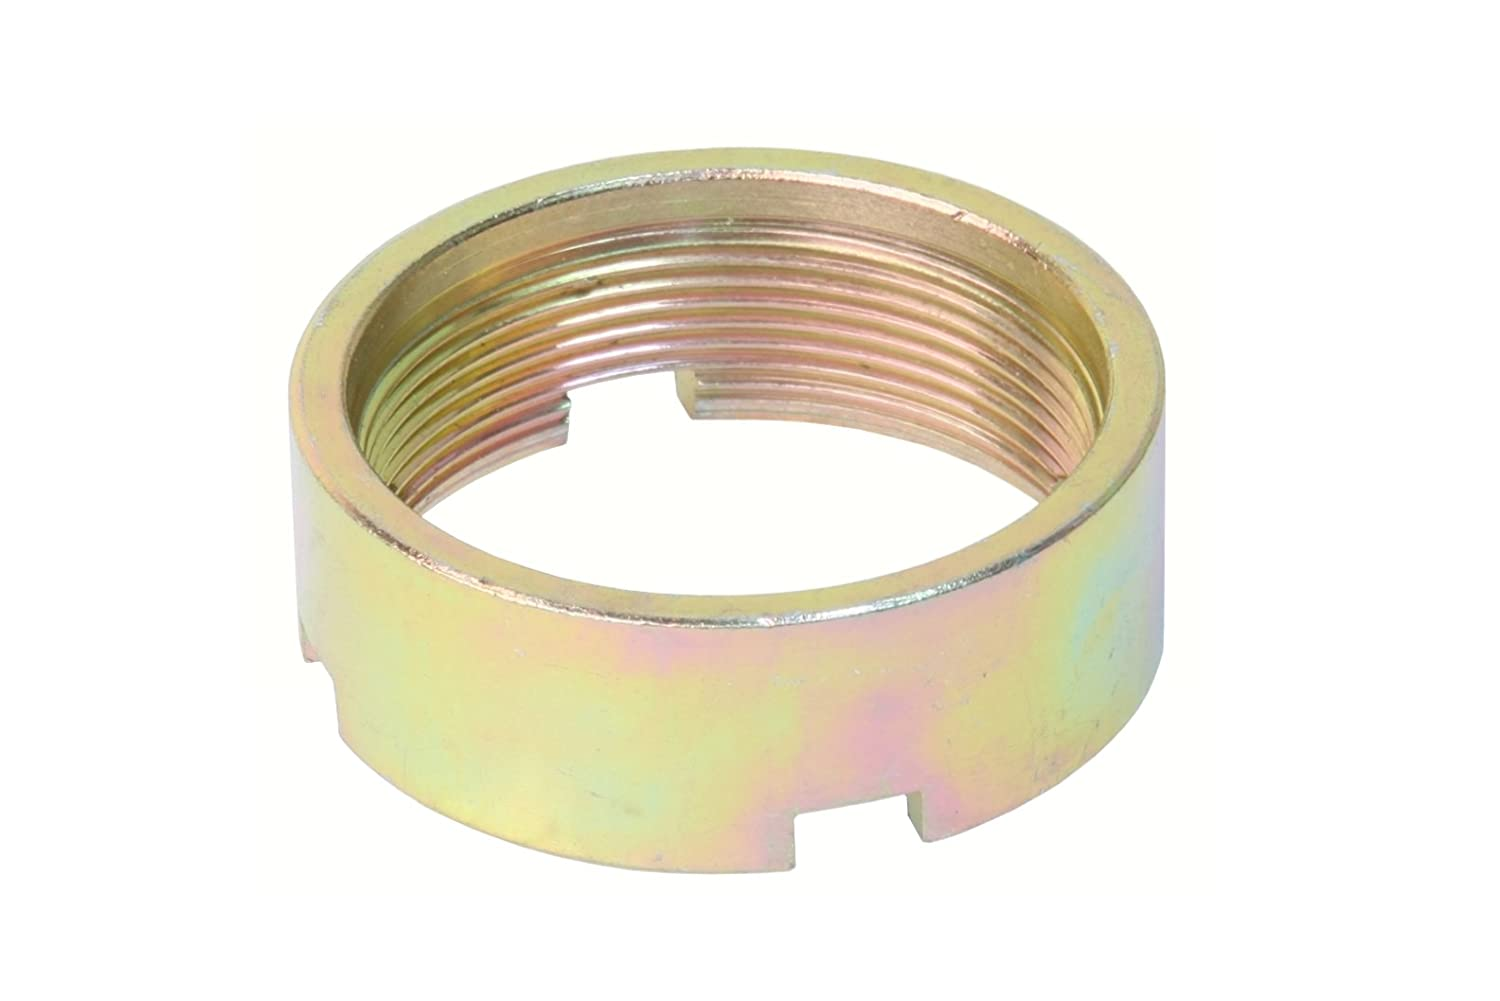 URO Parts 901 341 425 00 Ball Joint Nut